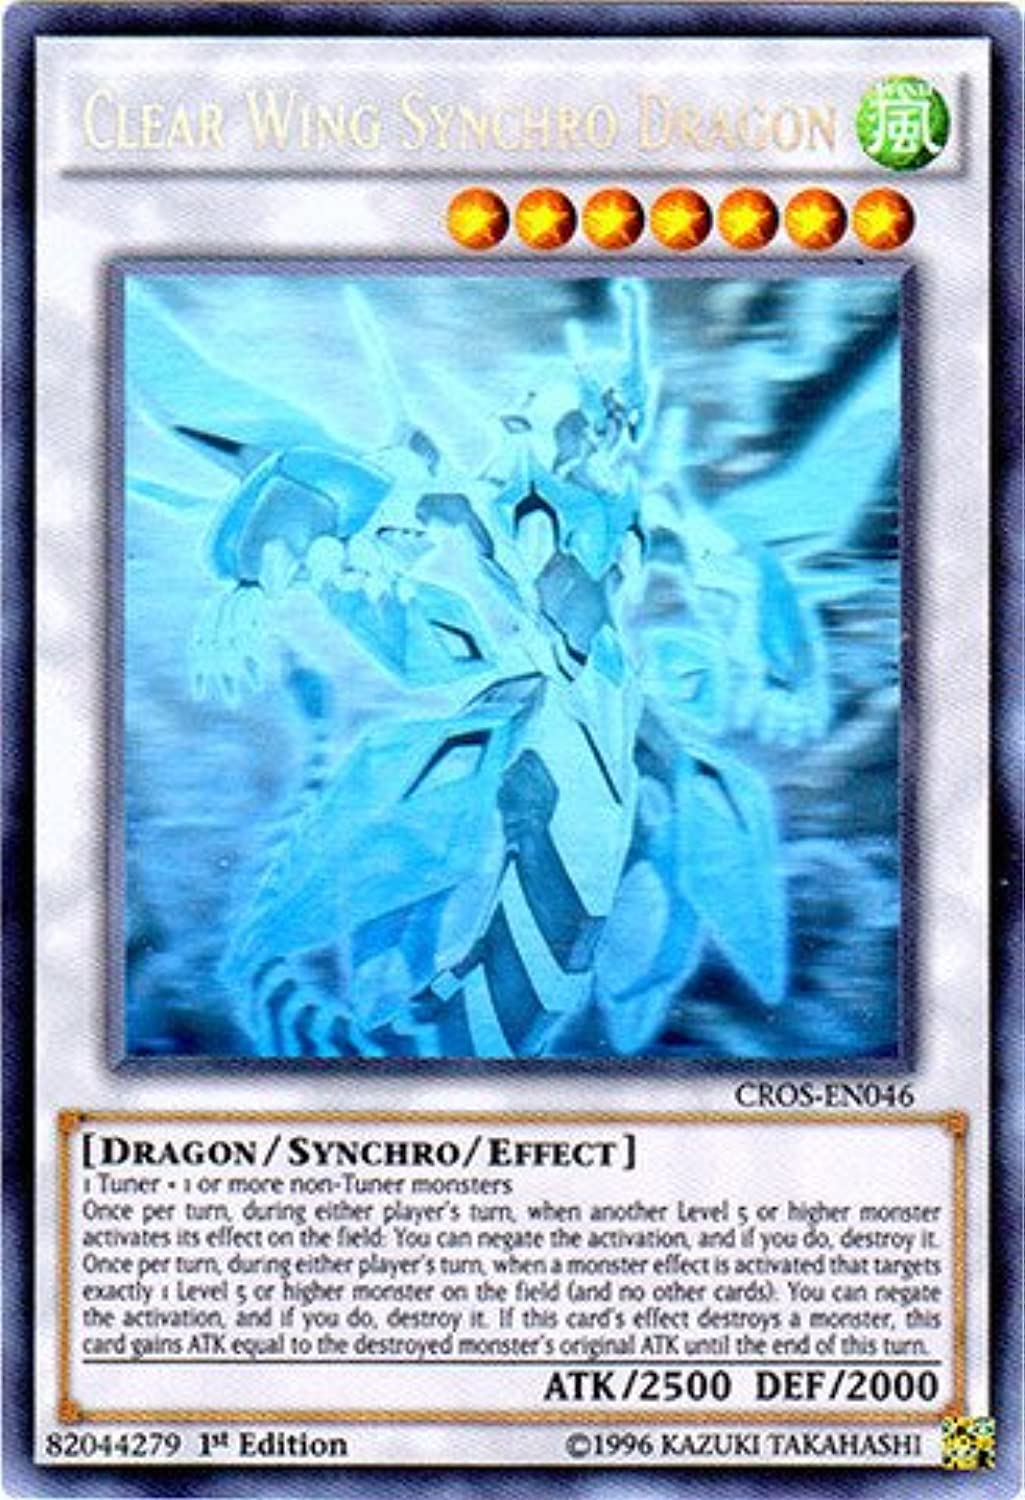 YuGiOh   Clear Wing Synchro Dragon (CpinkN046)  Crossed Souls  1st Edition  Ghost Rare by YuGiOh